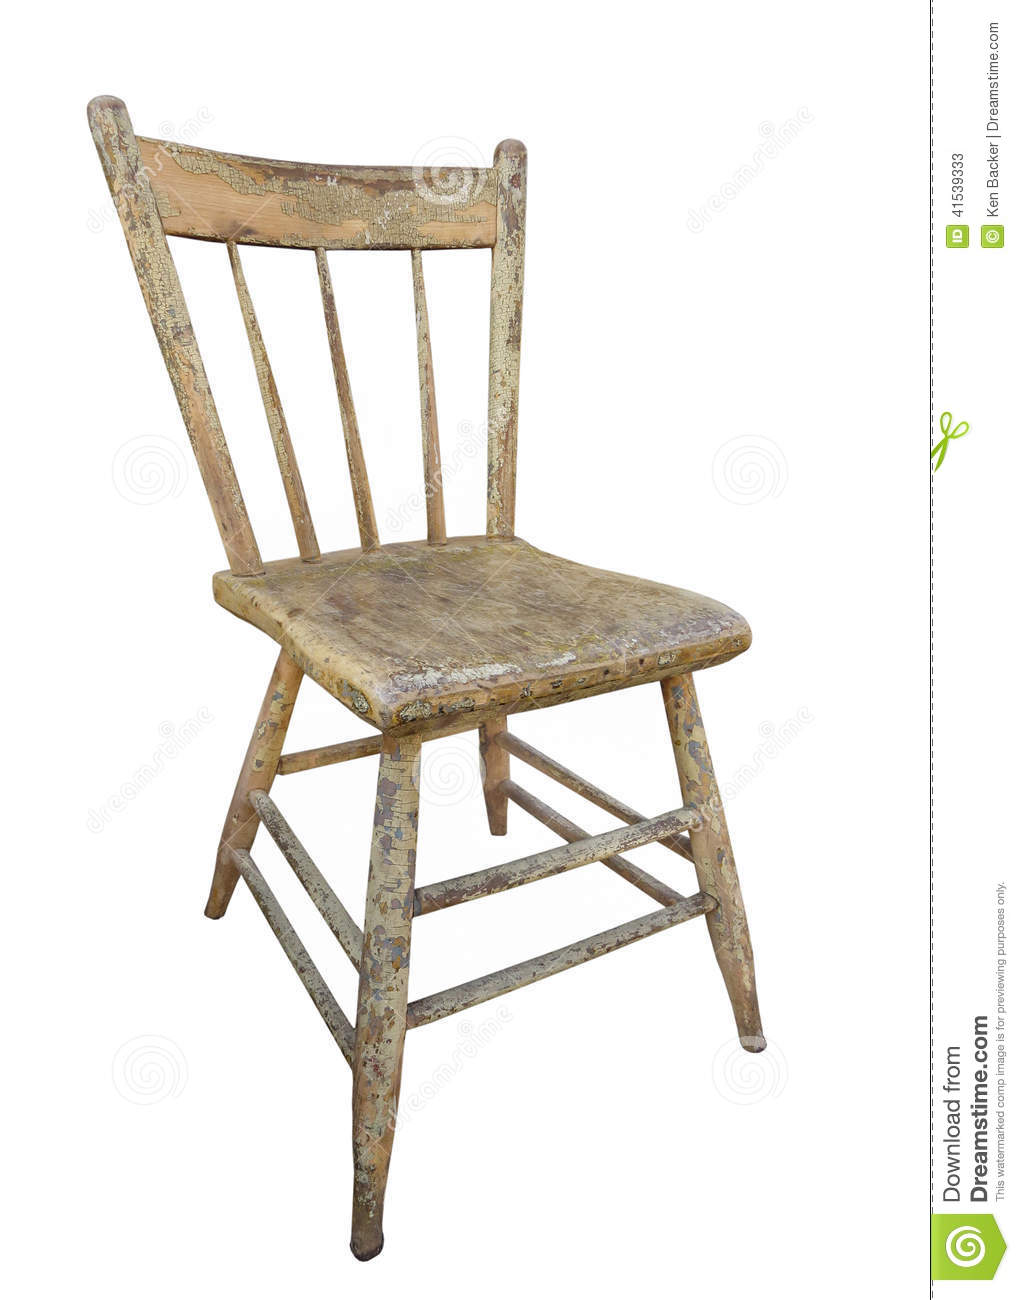 stock photo old wooden kitchen chair isolated weathered worn white image kitchen chair Old wooden kitchen chair isolated